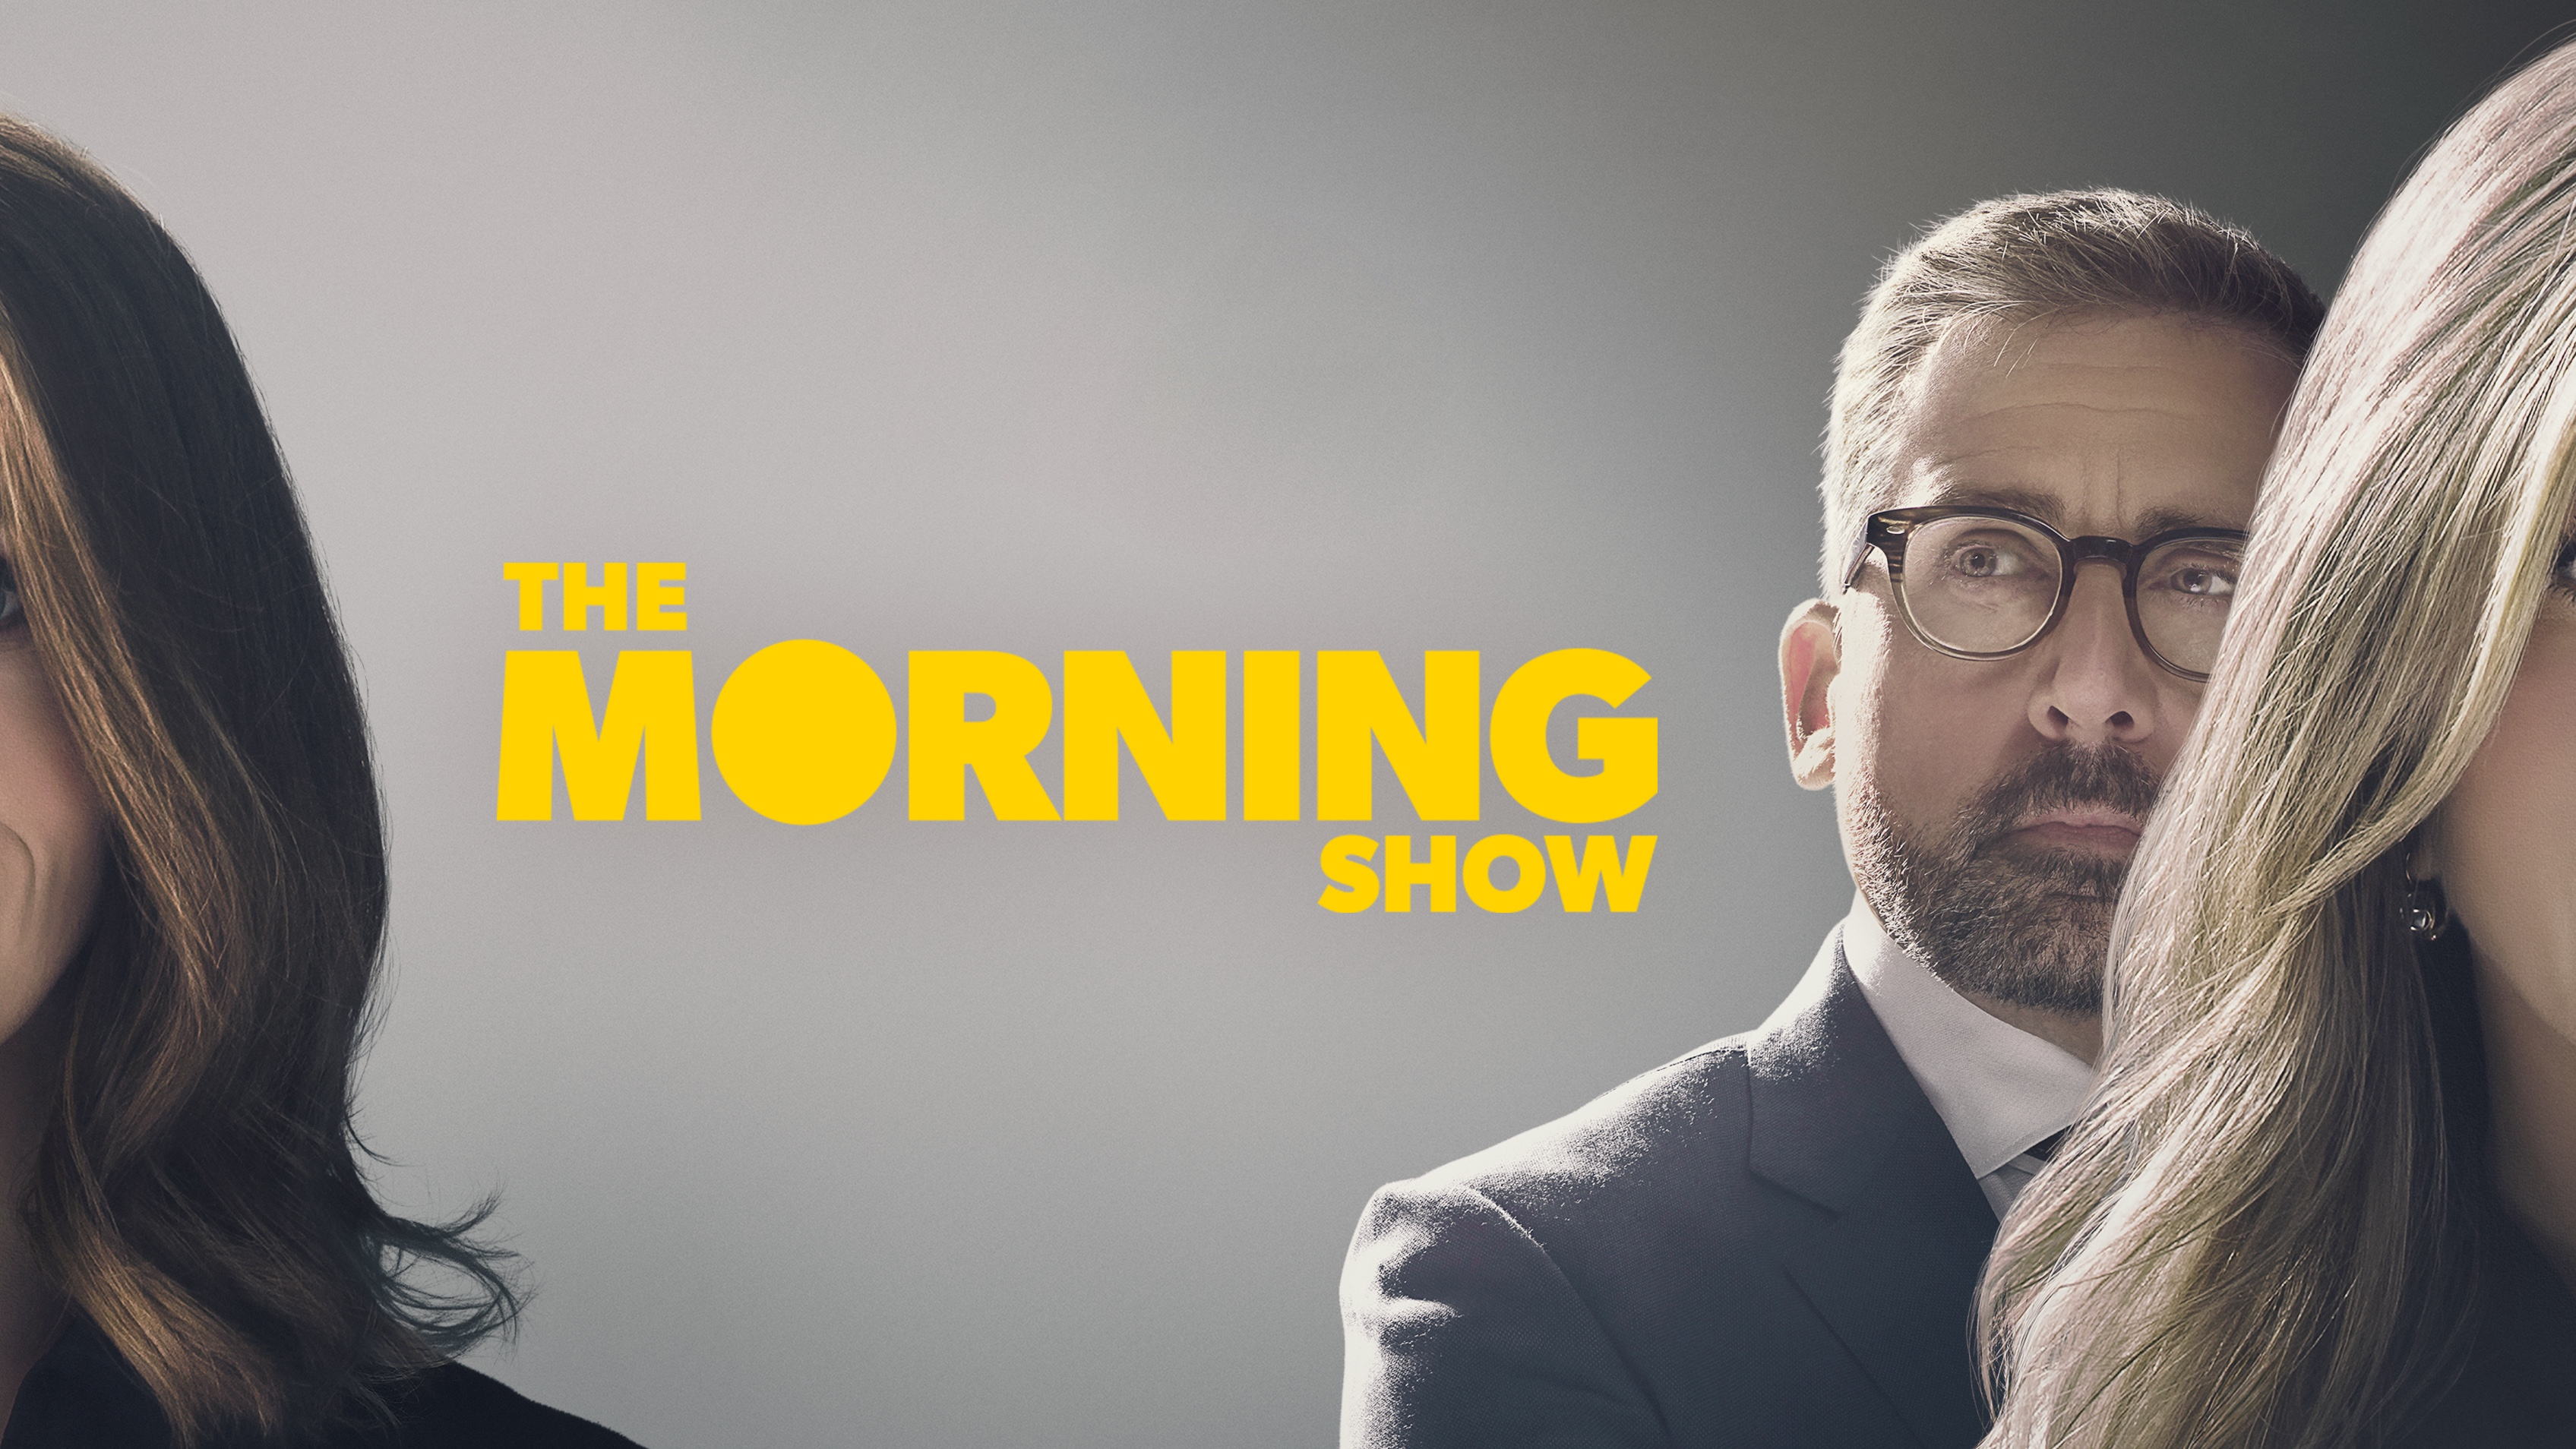 Apple TV+ The Morning Show 16x9